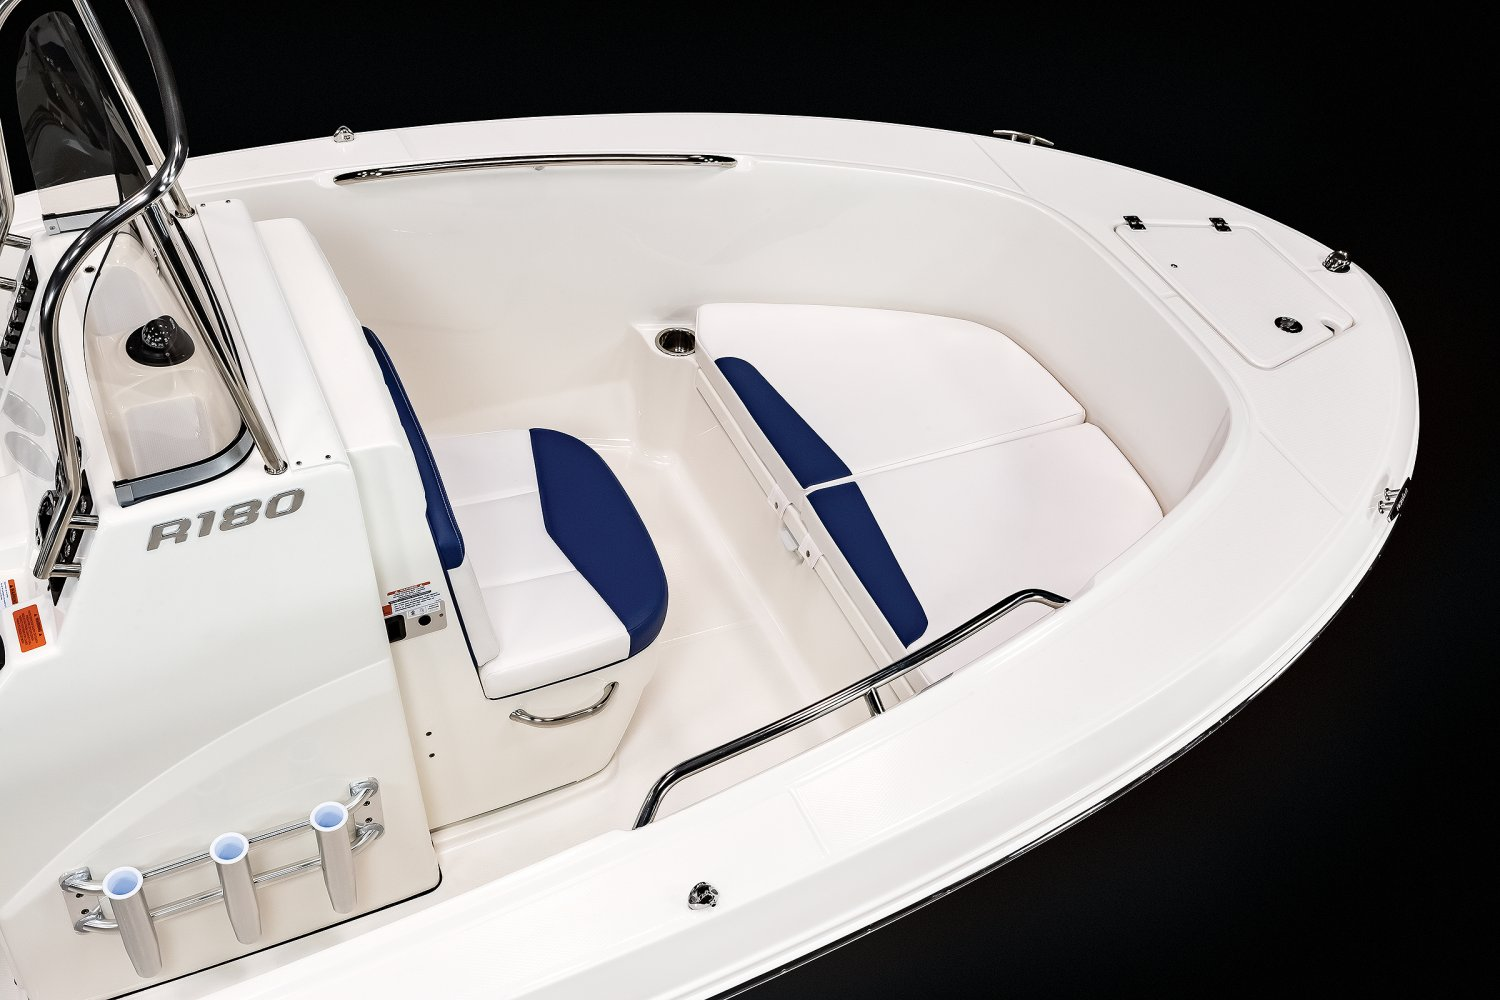 R180 - Bow Seating